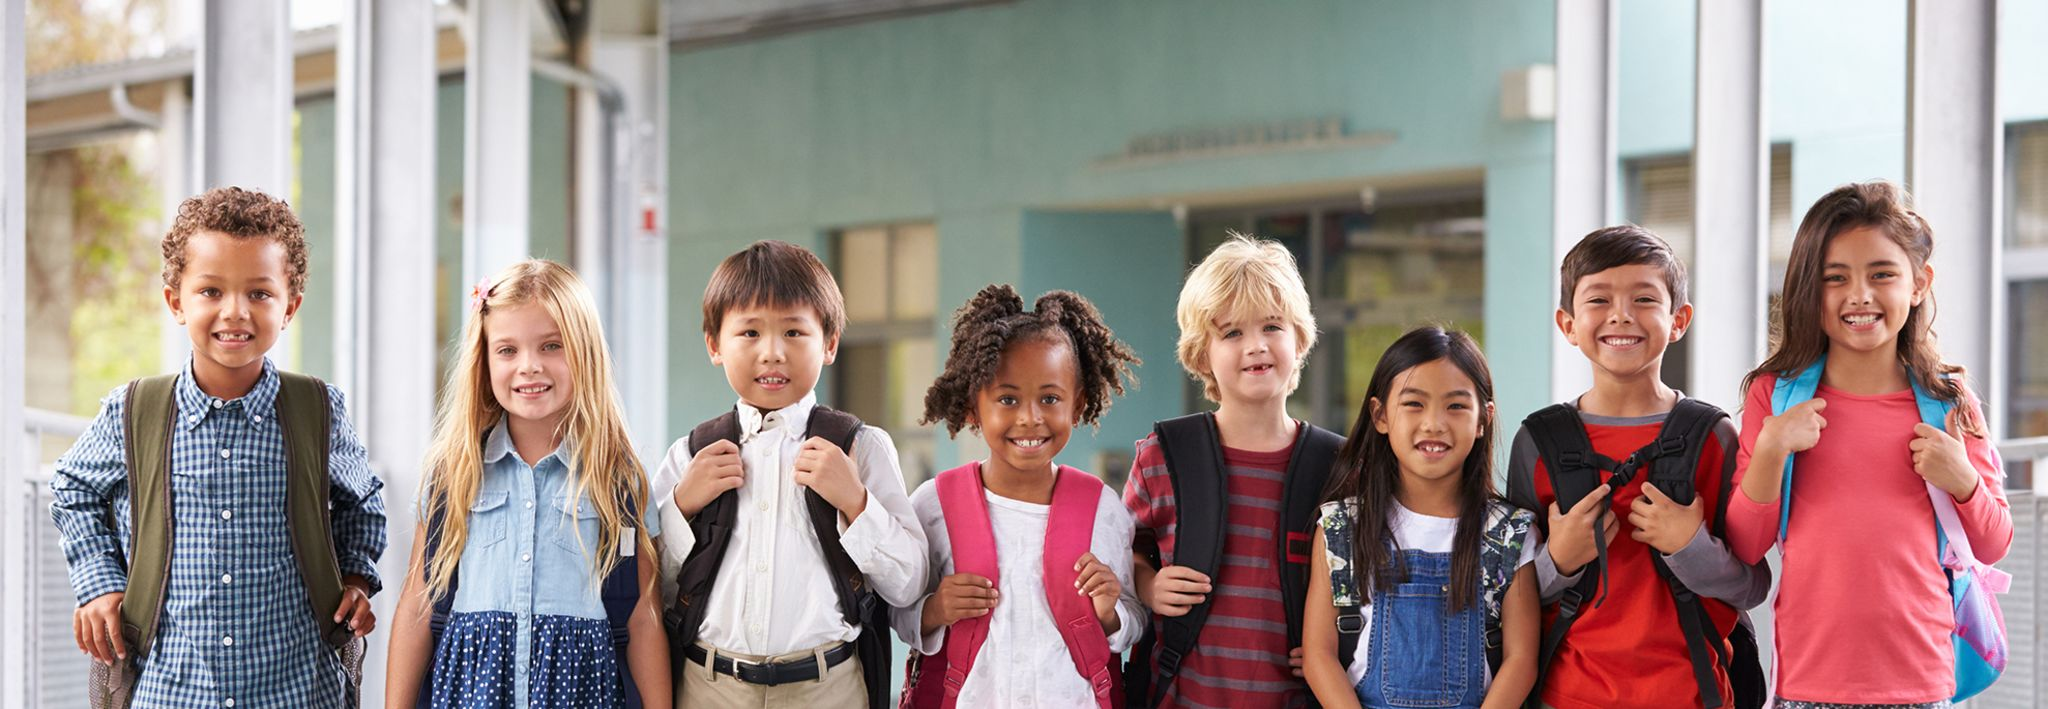 A group of children are getting ready to go into class at school.